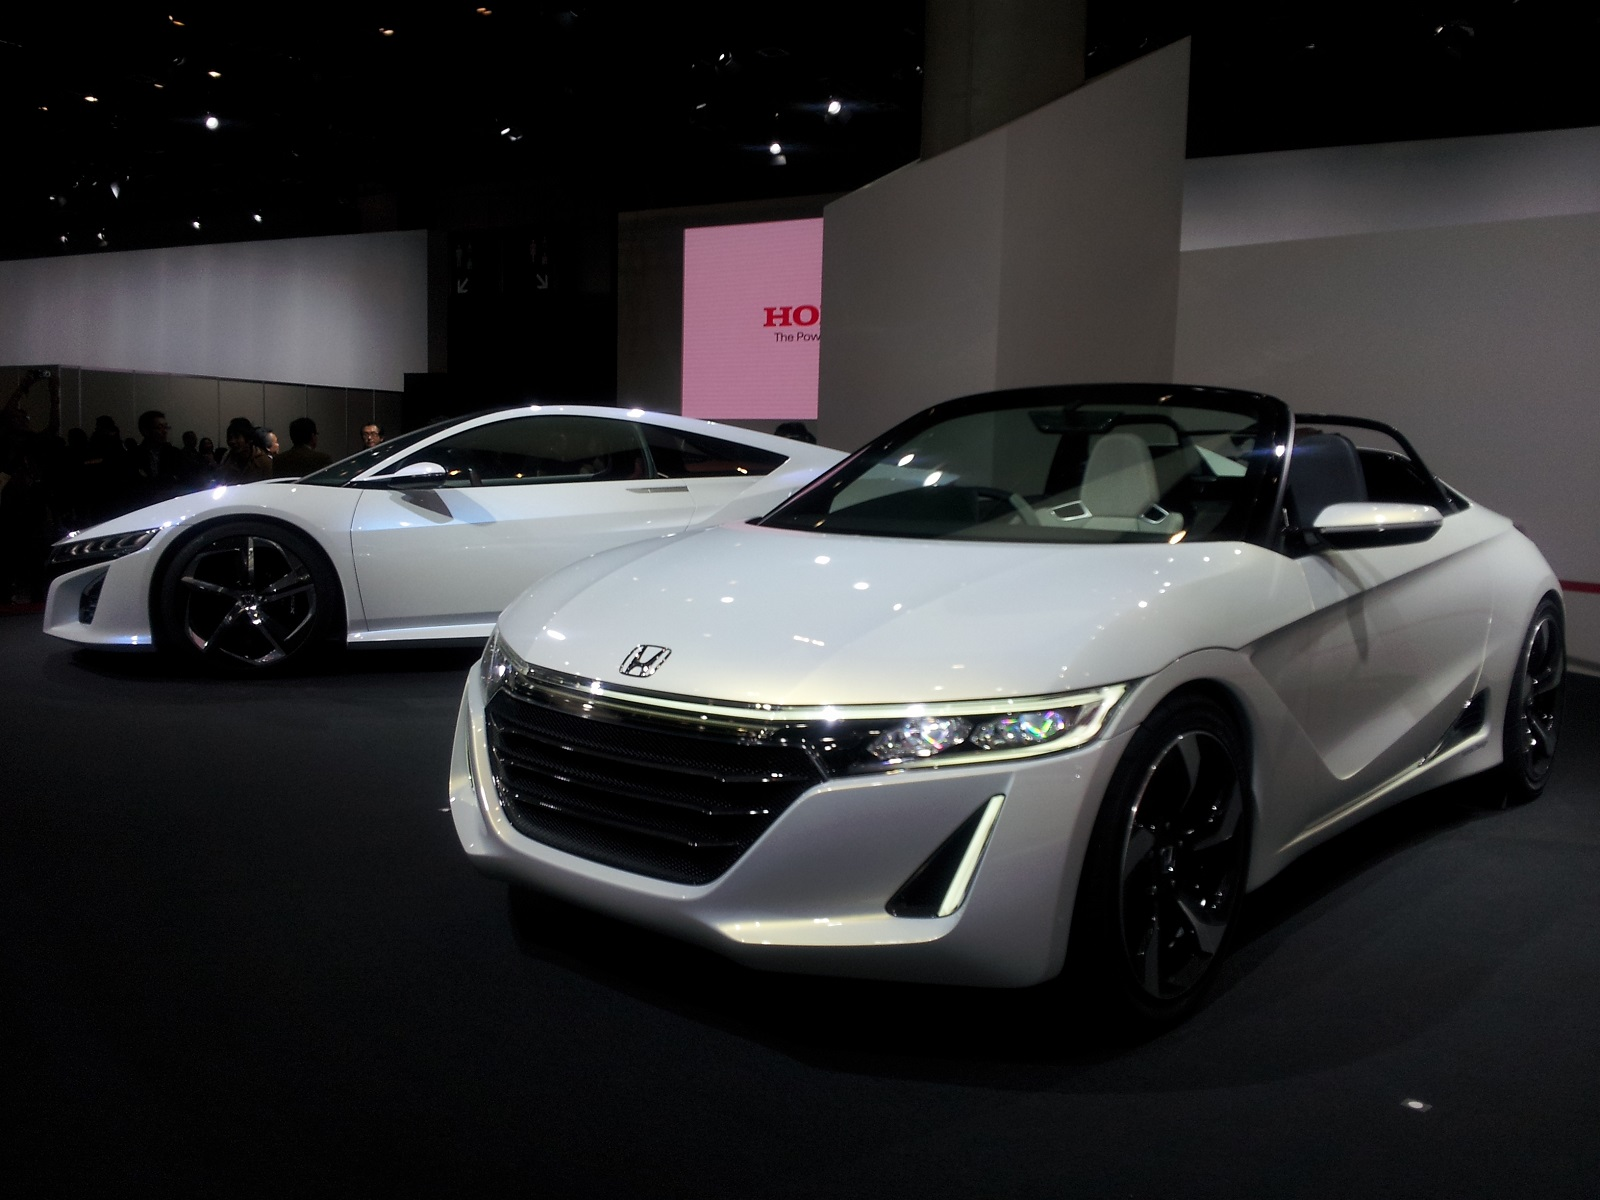 honda s660 mid engine sports car concept debuts in tokyo. Black Bedroom Furniture Sets. Home Design Ideas